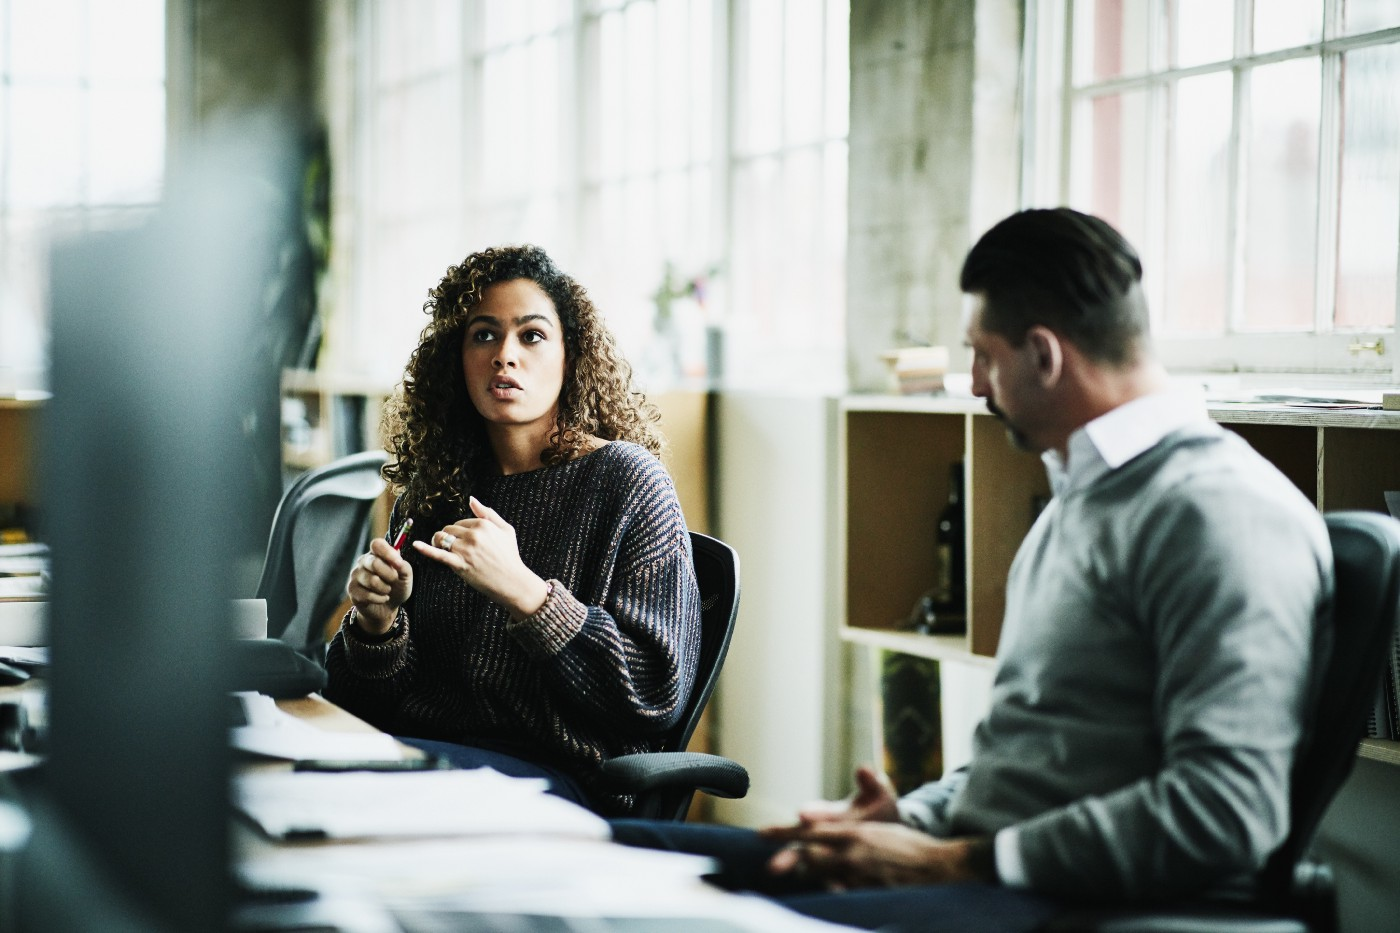 A woman discusses her idea in a meeting with a male colleague.